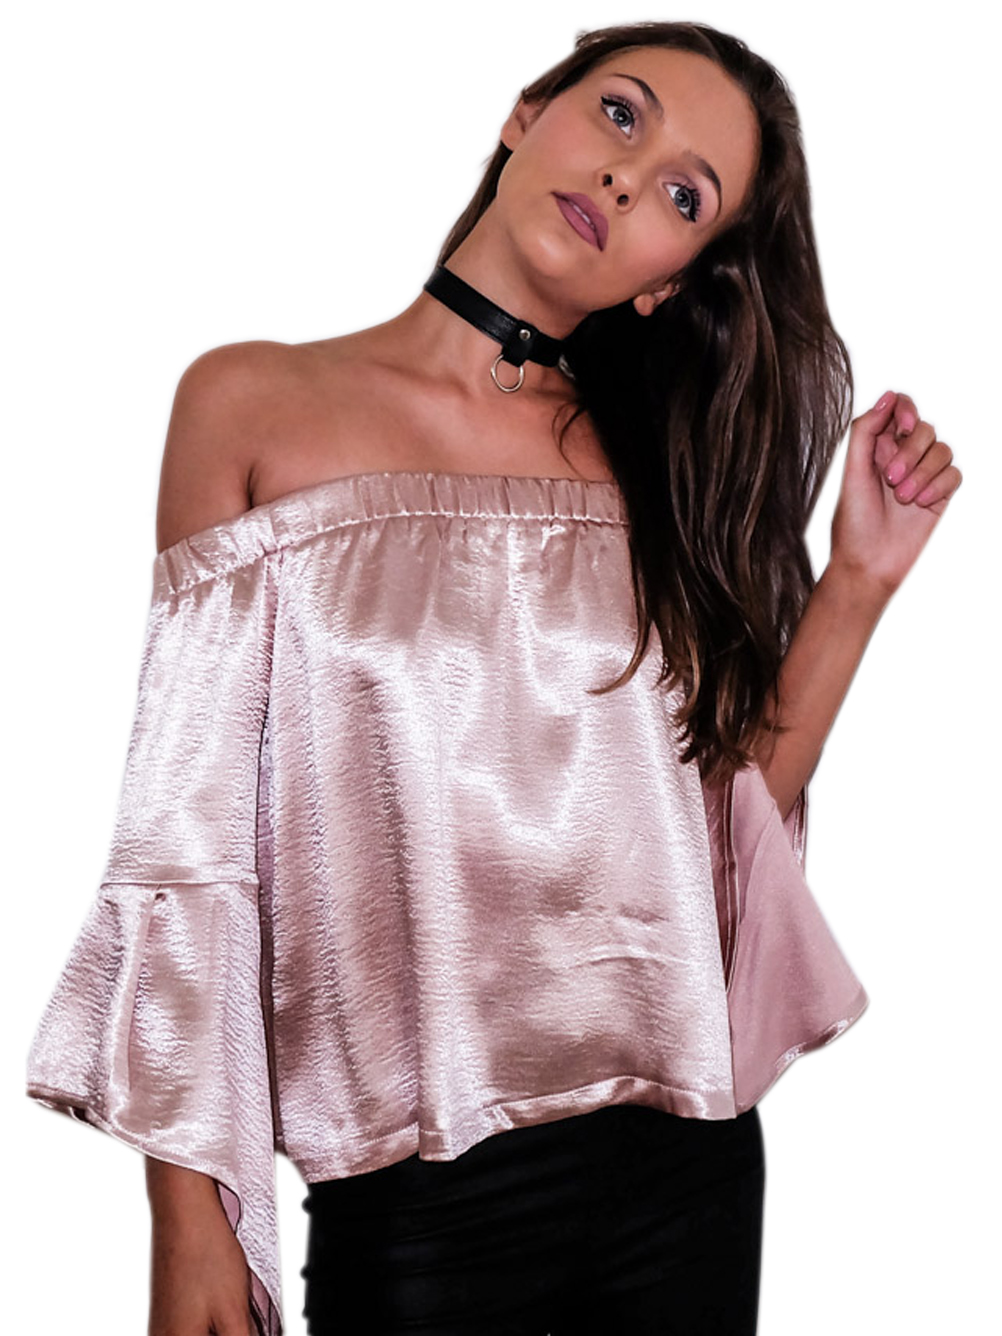 A real revolution of fashion is underway. To discover cheap plus size clothing, find no further than Rosegal's collection. If you've browsed through our wonderful array of plus size blouses and leggings and done shopping for trendy clothing, fret not.